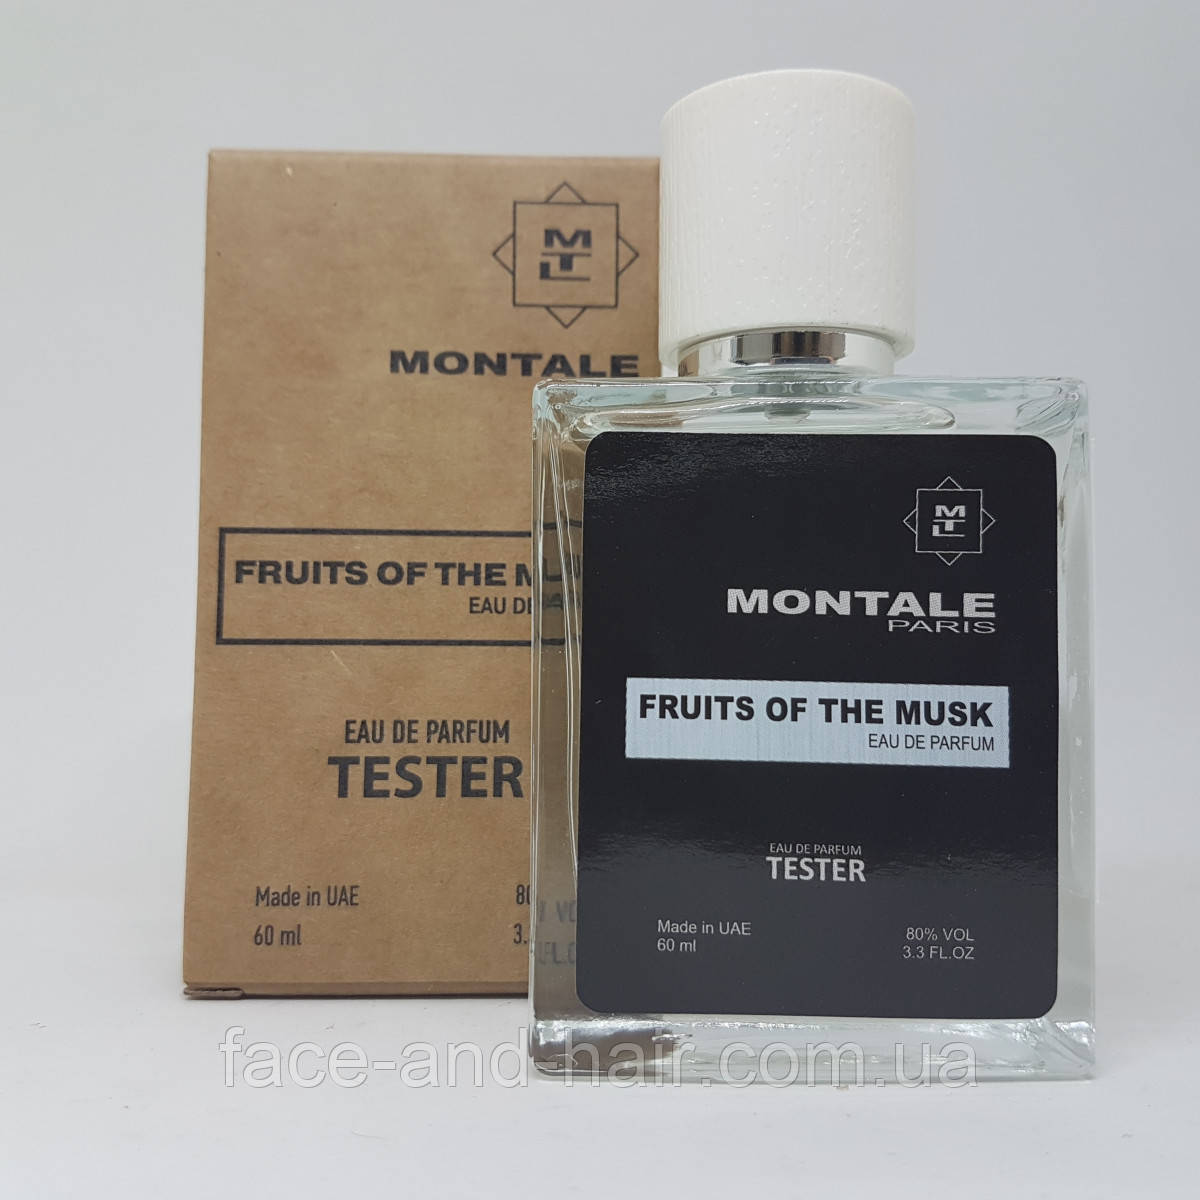 Montale Fruits Of The Musk - Quadro Tester 60ml